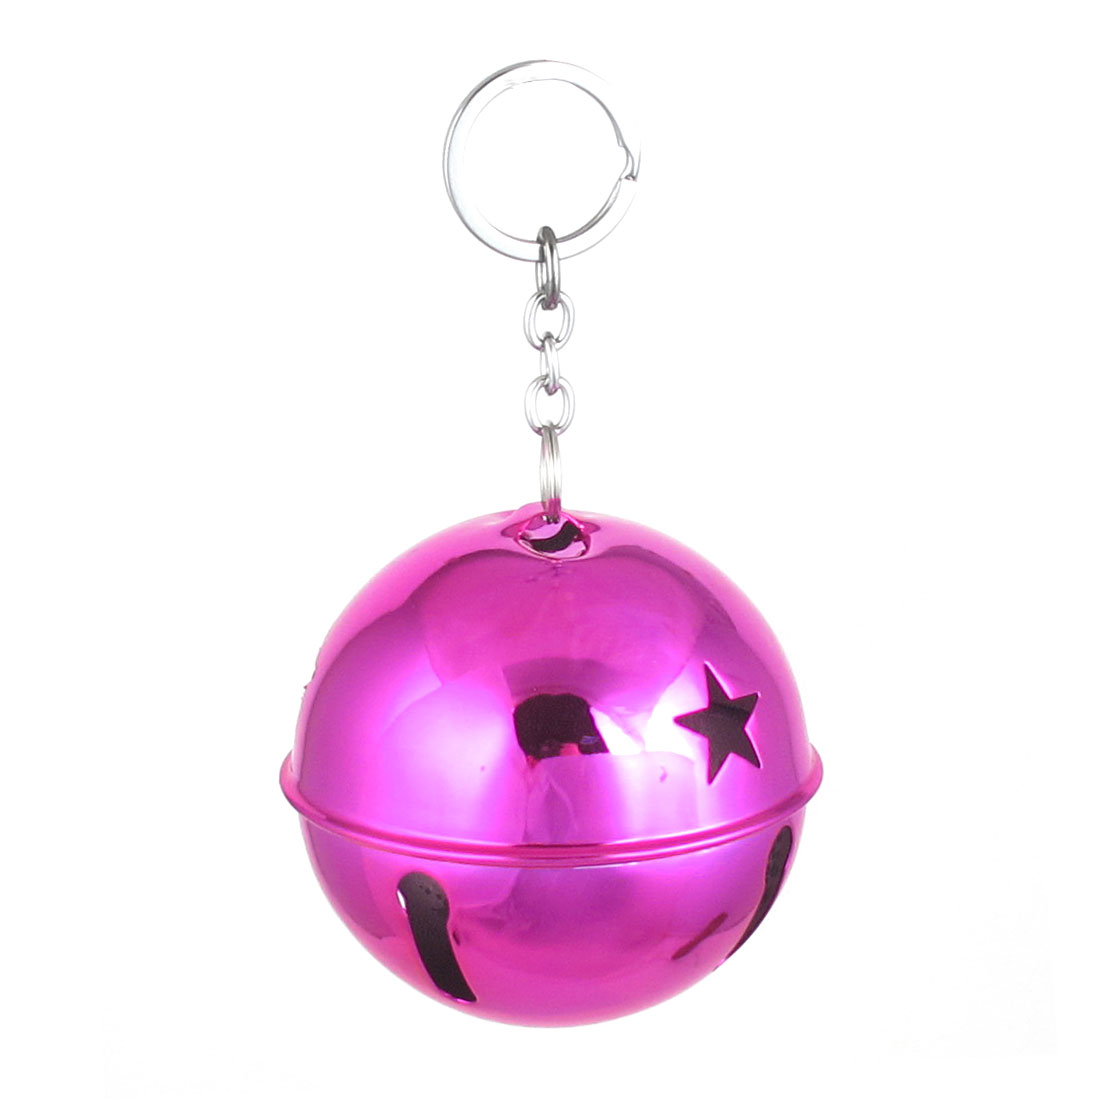 Xmas Purse Backpack Metal Keyring Split Star Hollow Out Design Ring Bell Ornament Fuchsia Color 80mm Dia